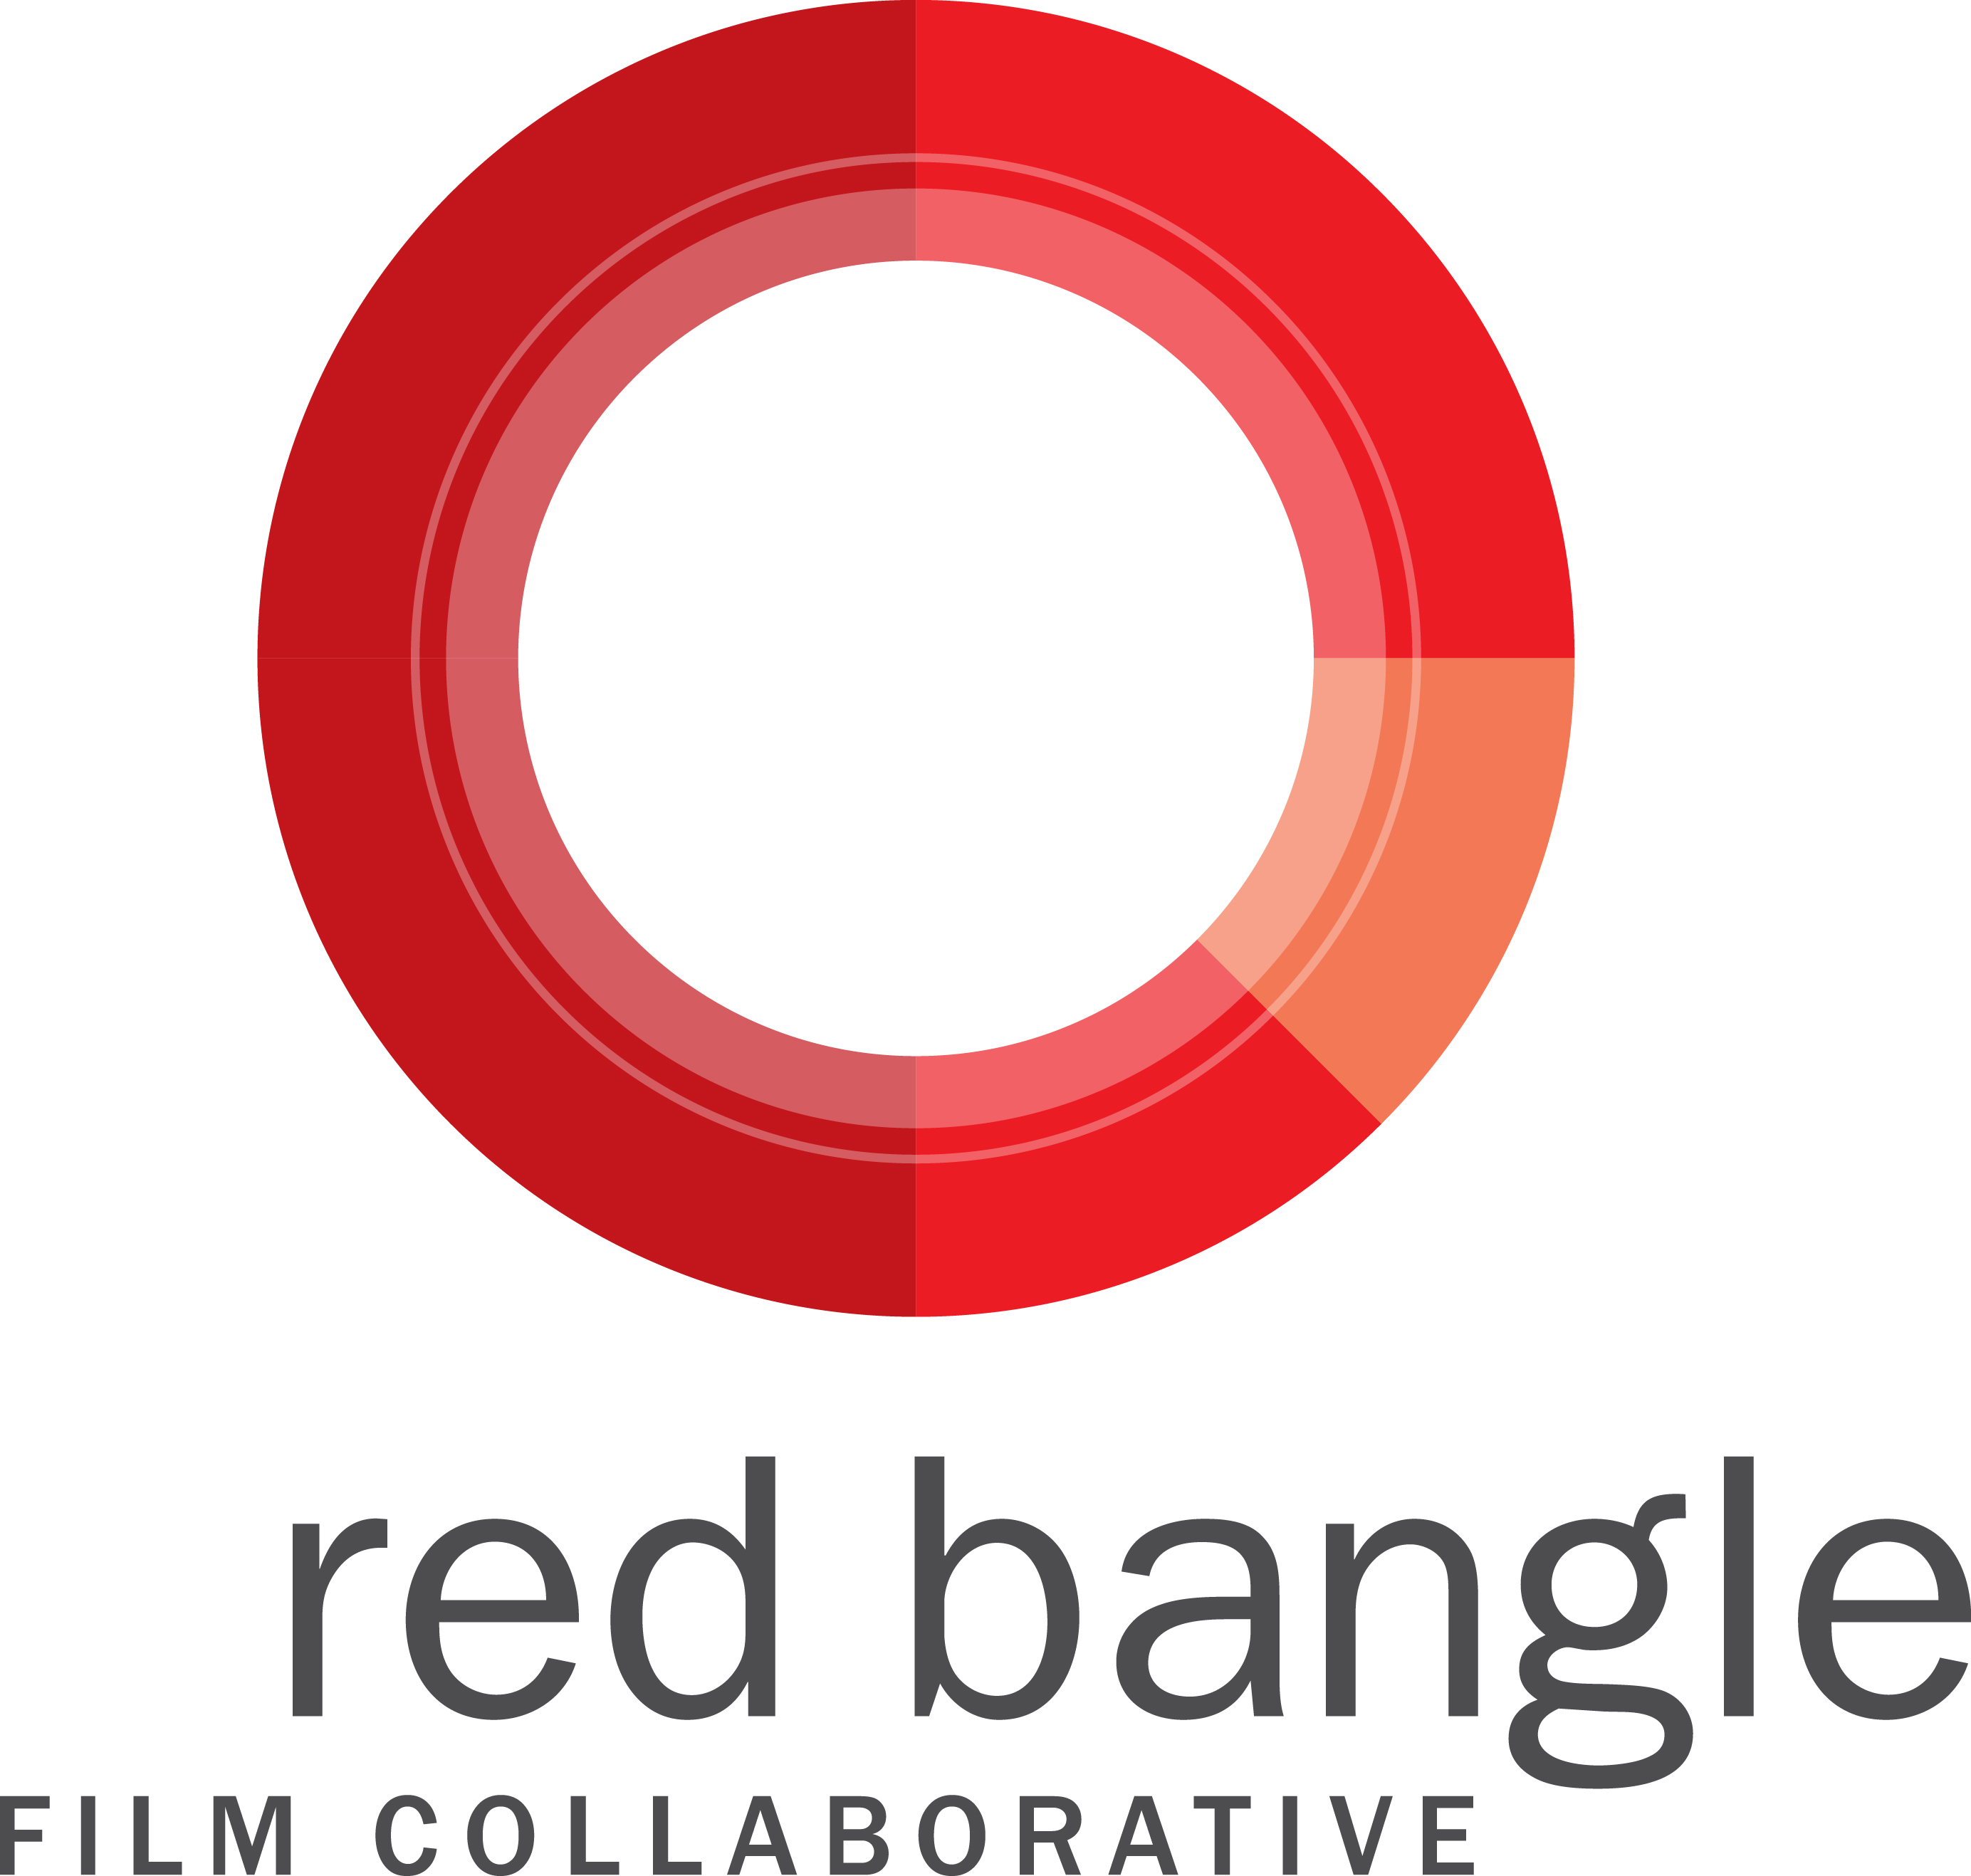 Red bangle logo copy